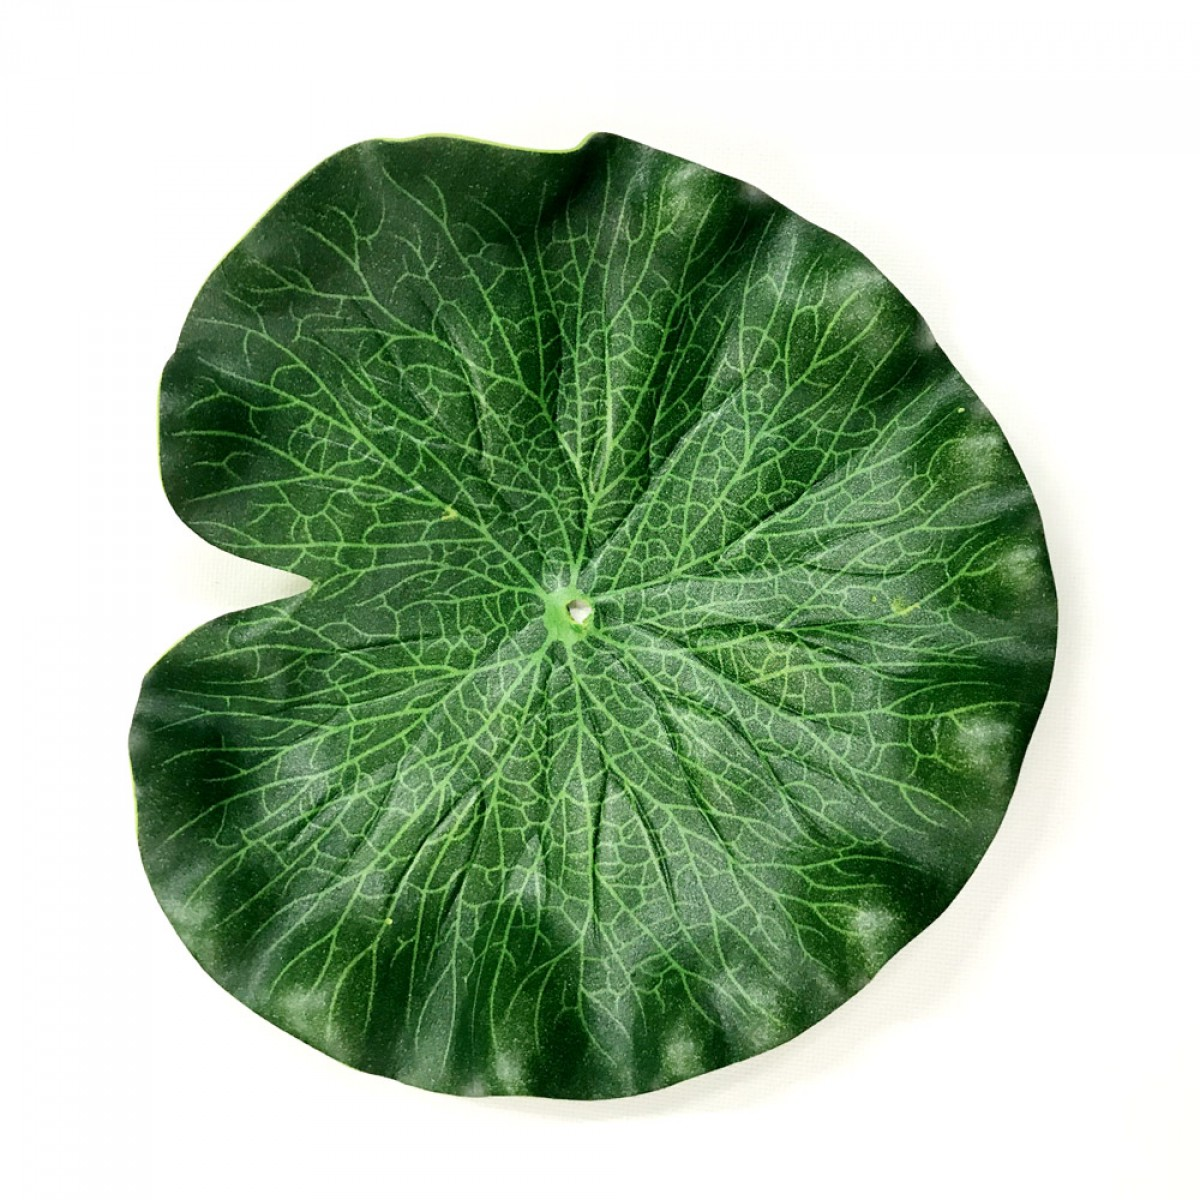 Lotus Leaf Artificial Trees And Flowers Wholesale Melbourne Ribbons Vases Florist Supplies